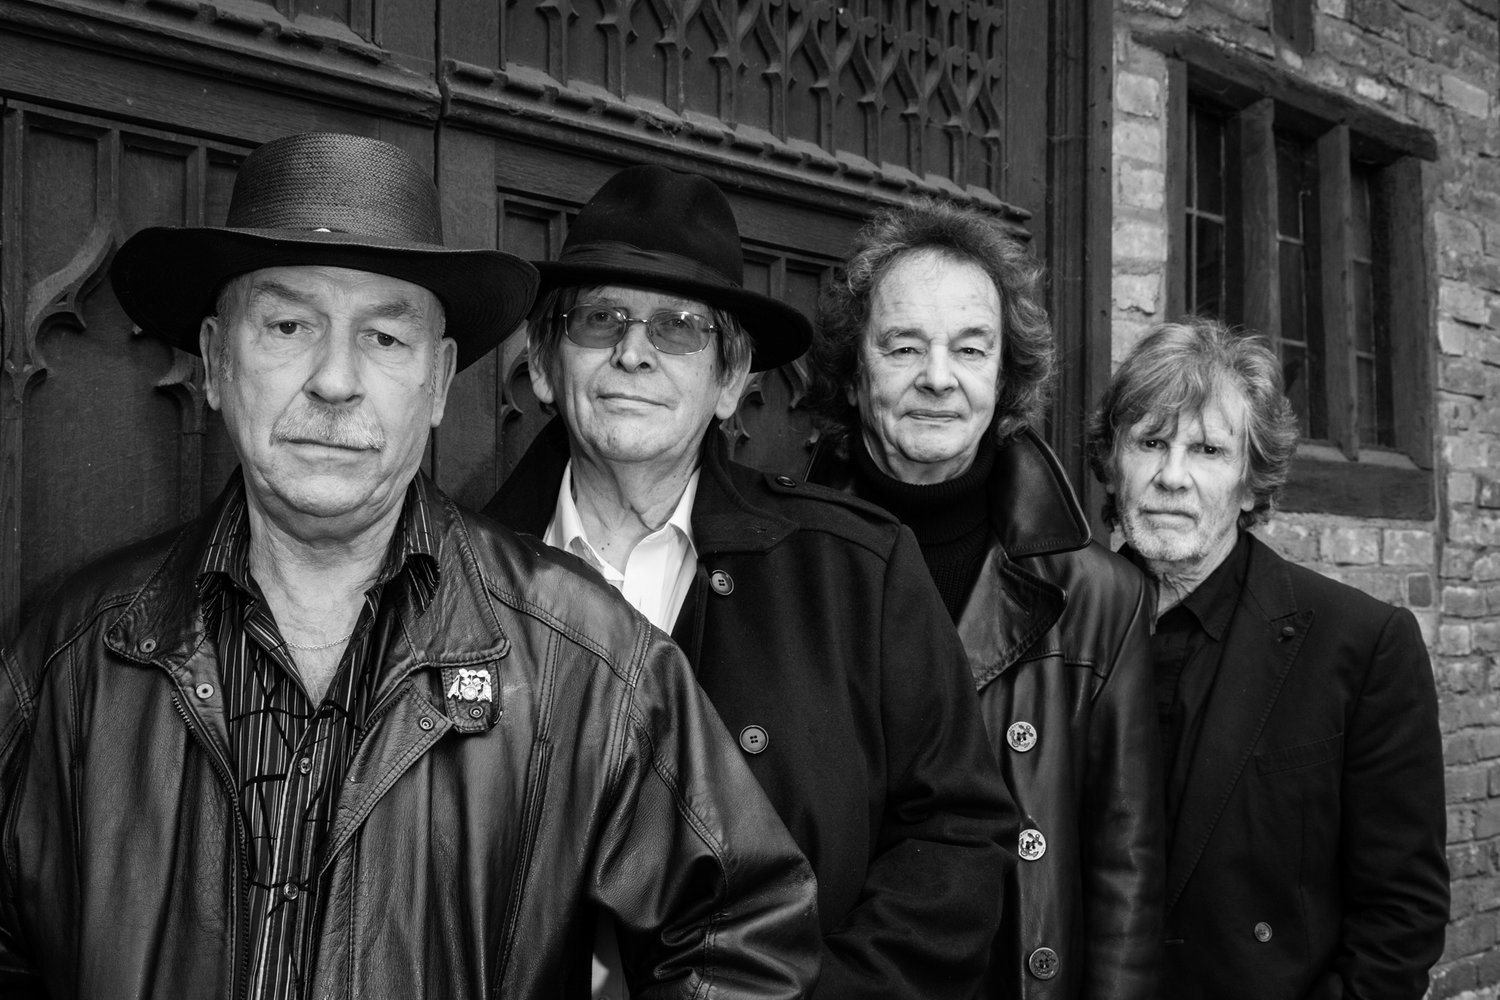 The Zombies will perform at the Ponte Vedra Concert Hall Wednesday, Feb. 20 at 8 p.m. (doors open at 7 p.m.). For tickets, visit www.pontevedraconcerthall.com.